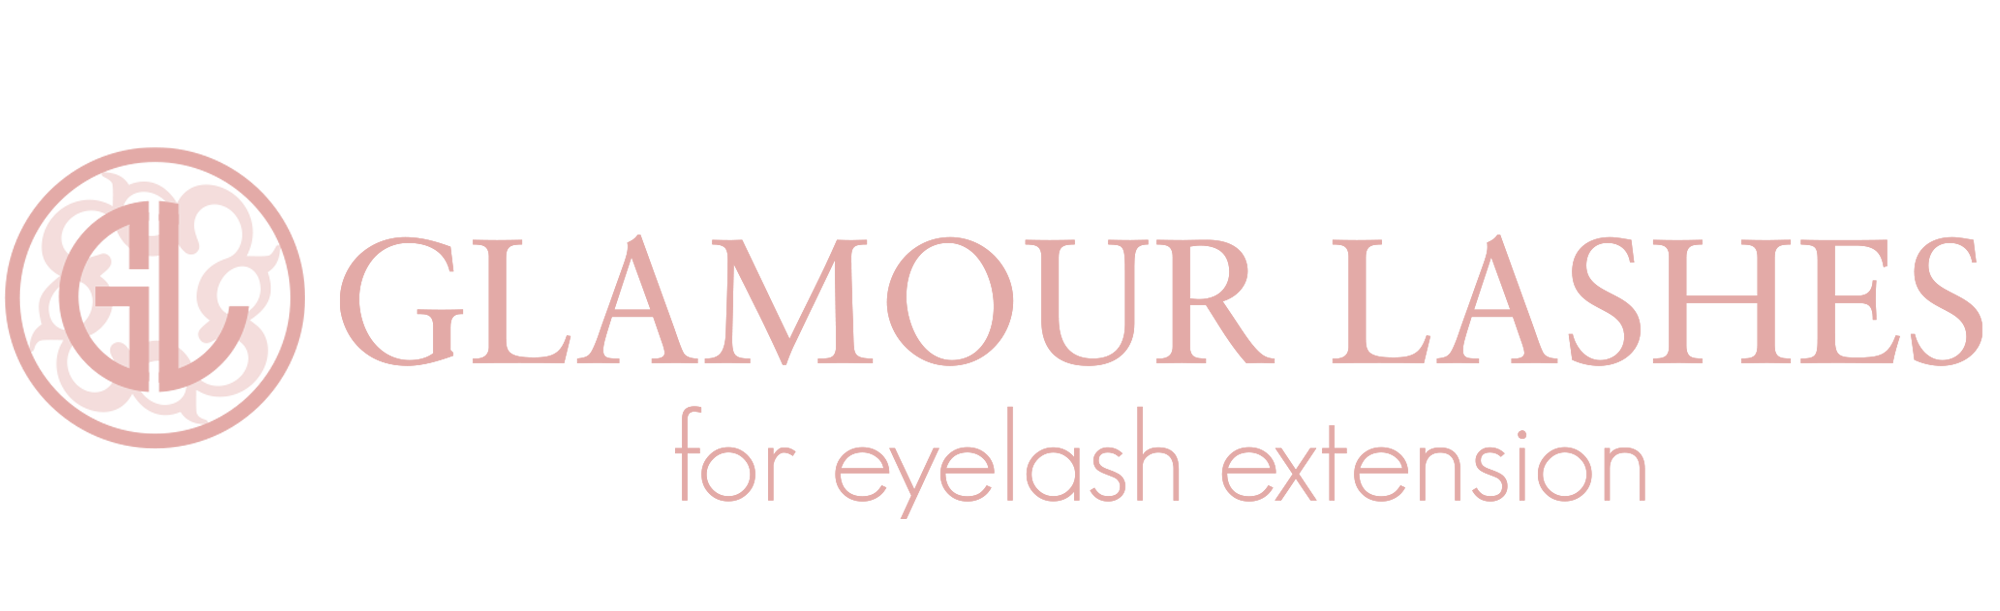 Glamour Lashes - Exclusive Lashes